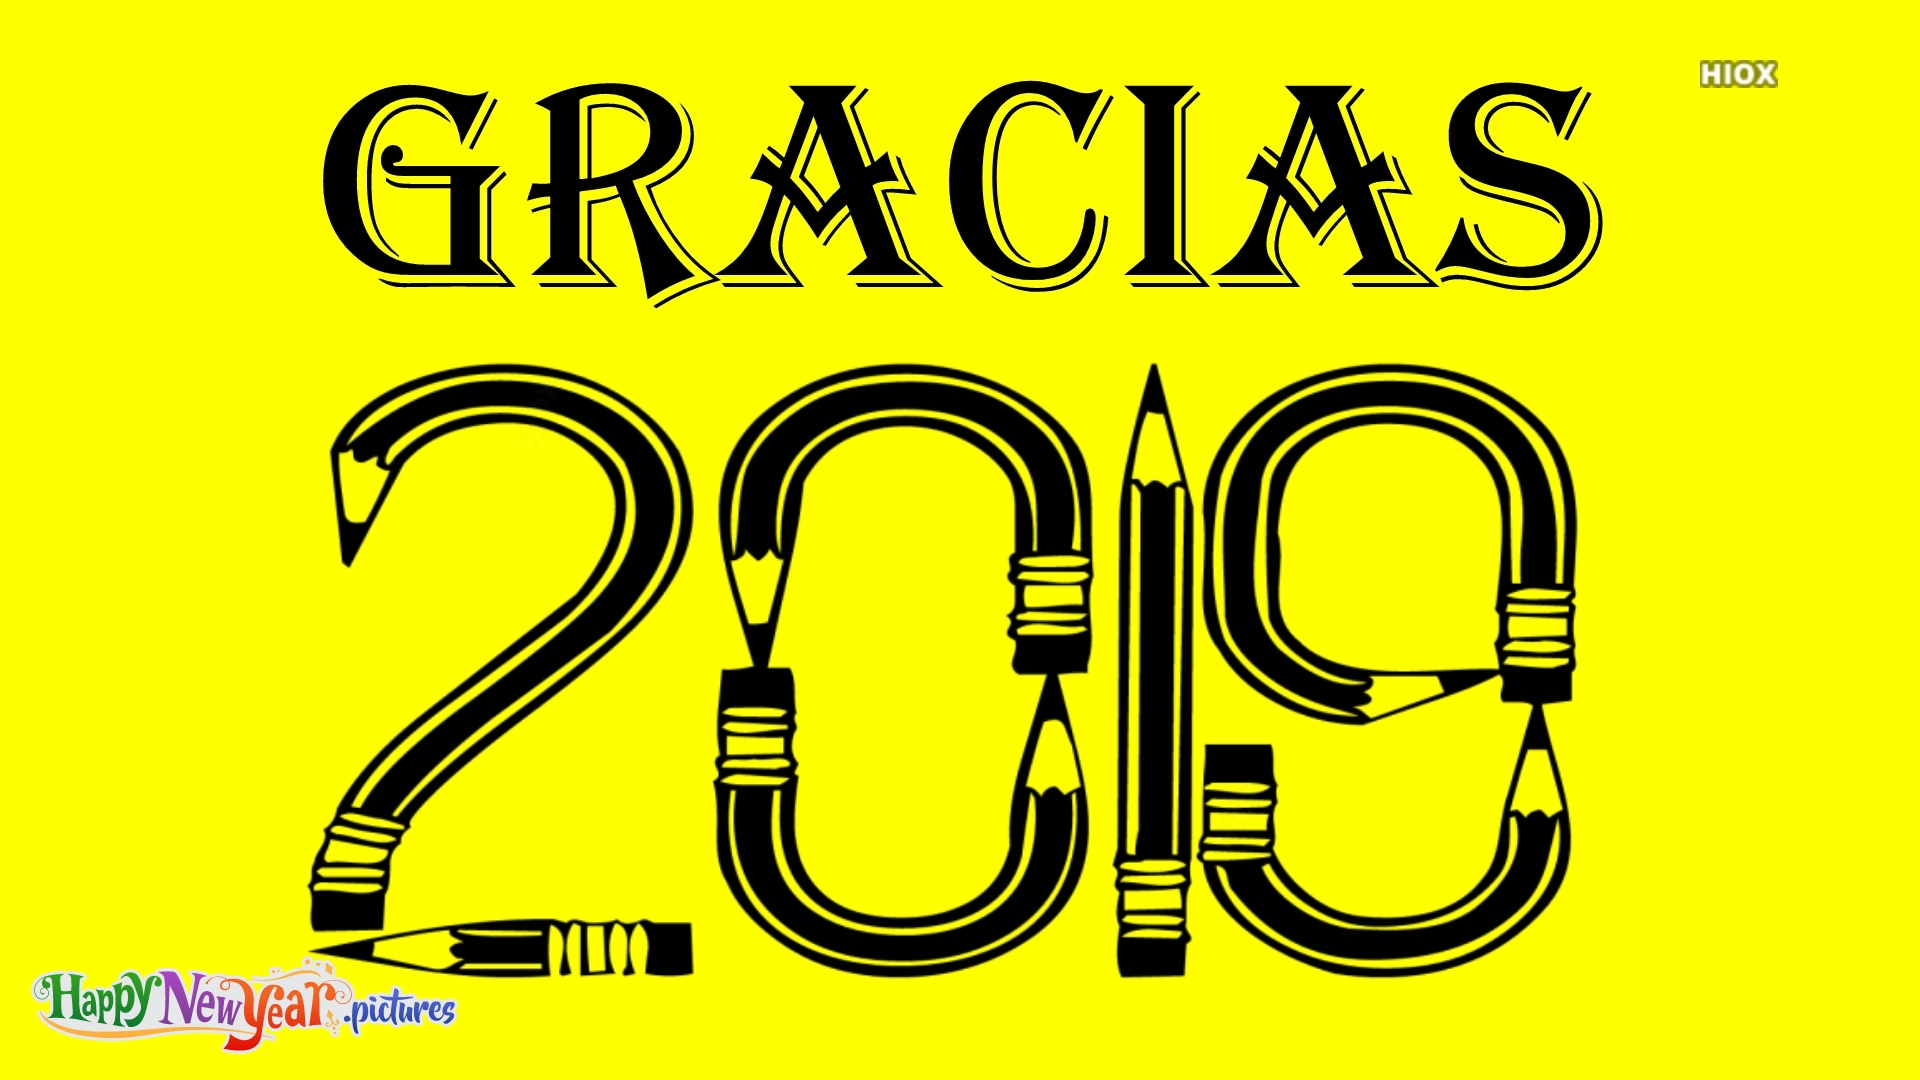 Thank You 2019 In Spanish